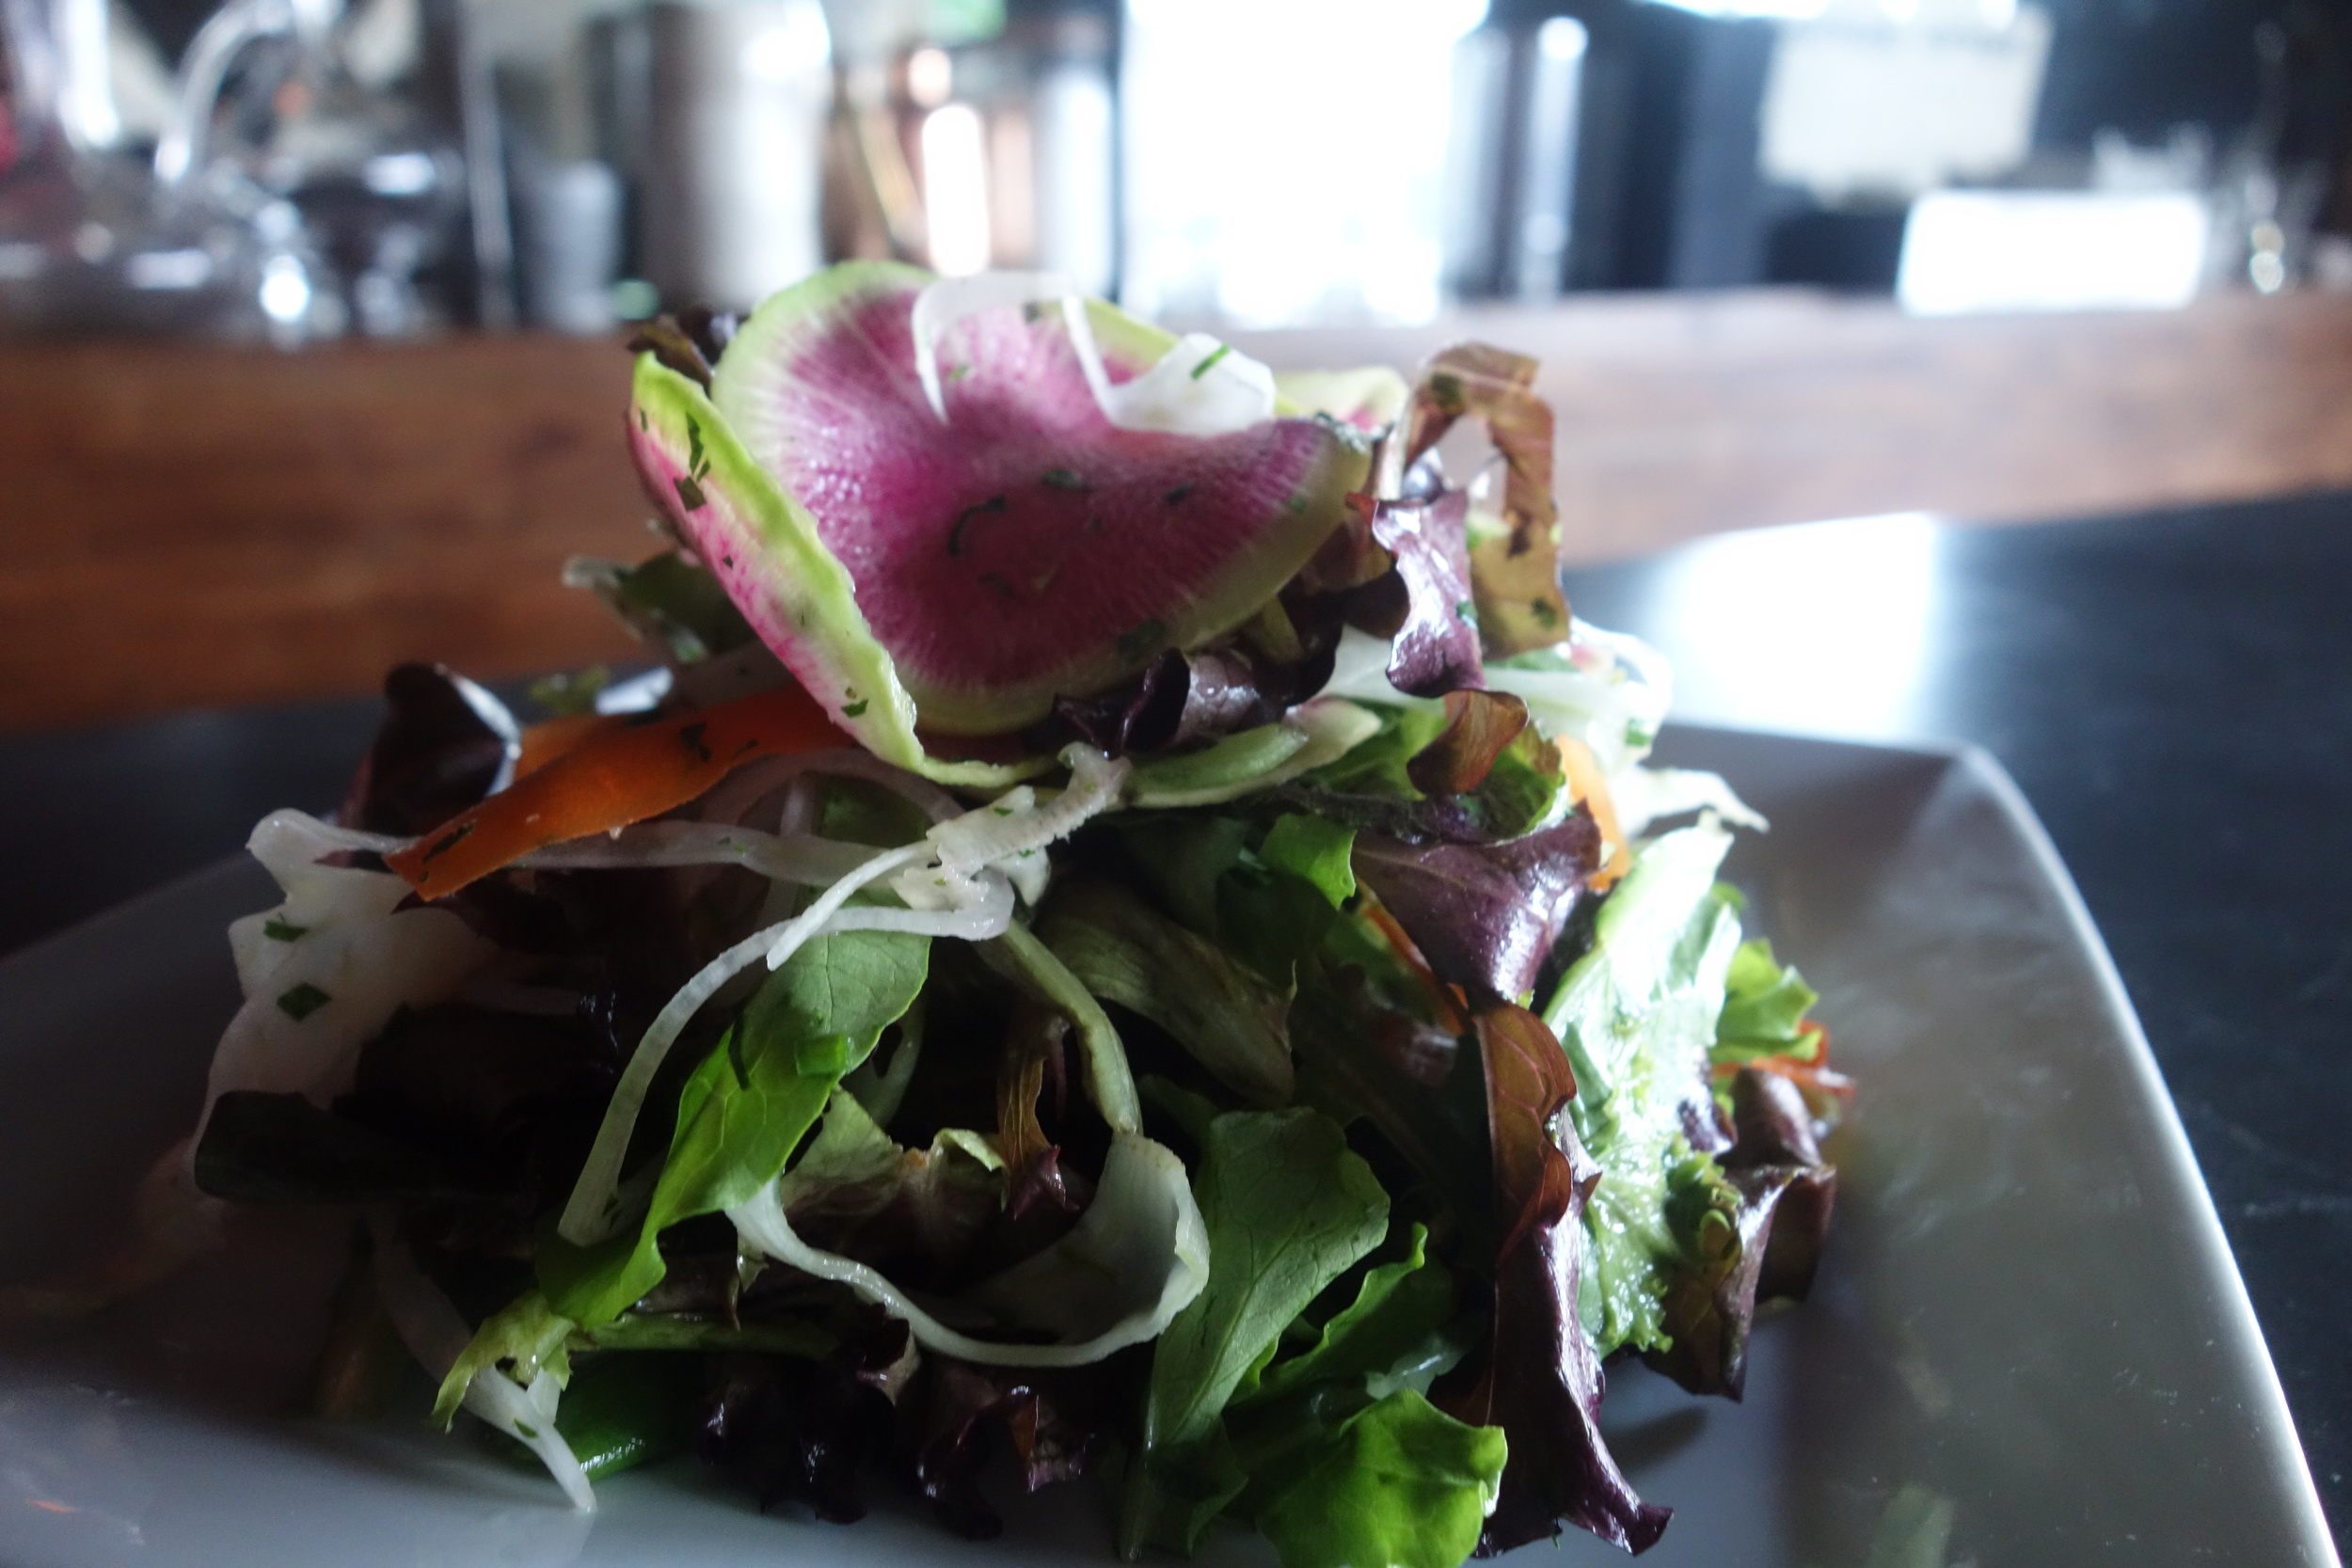 A simple, tasty spring mix salad with veggie crudite and lemon. (Photo by Nicole Reed)